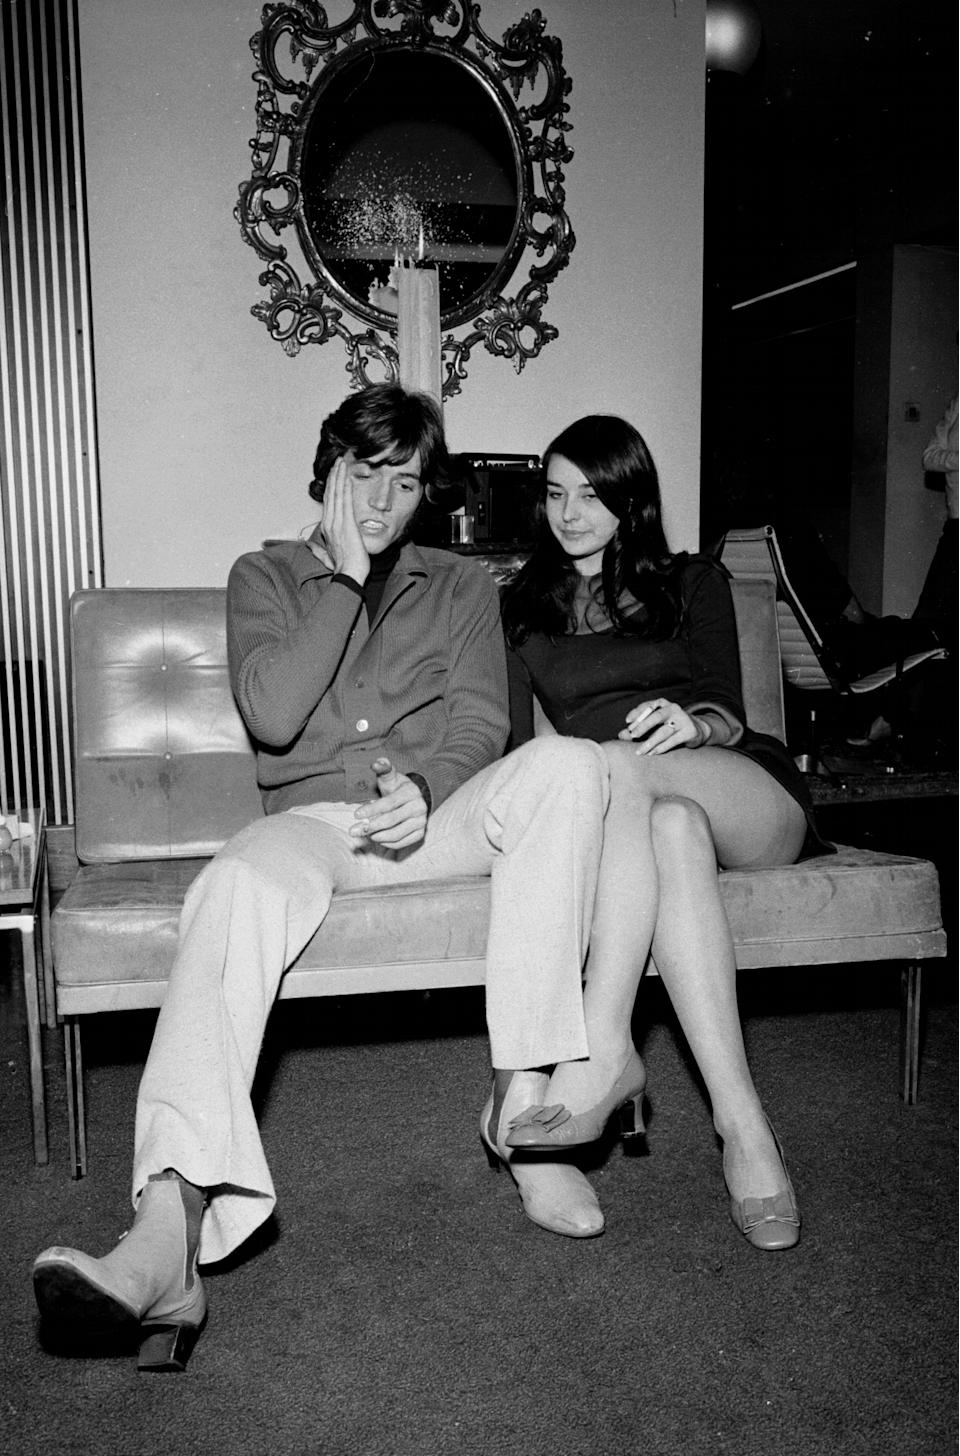 He was taken there after a revolver was fired outside his penthouse flat in the City of London October 1968 (Photo by Mirrorpix/Mirrorpix via Getty Images)